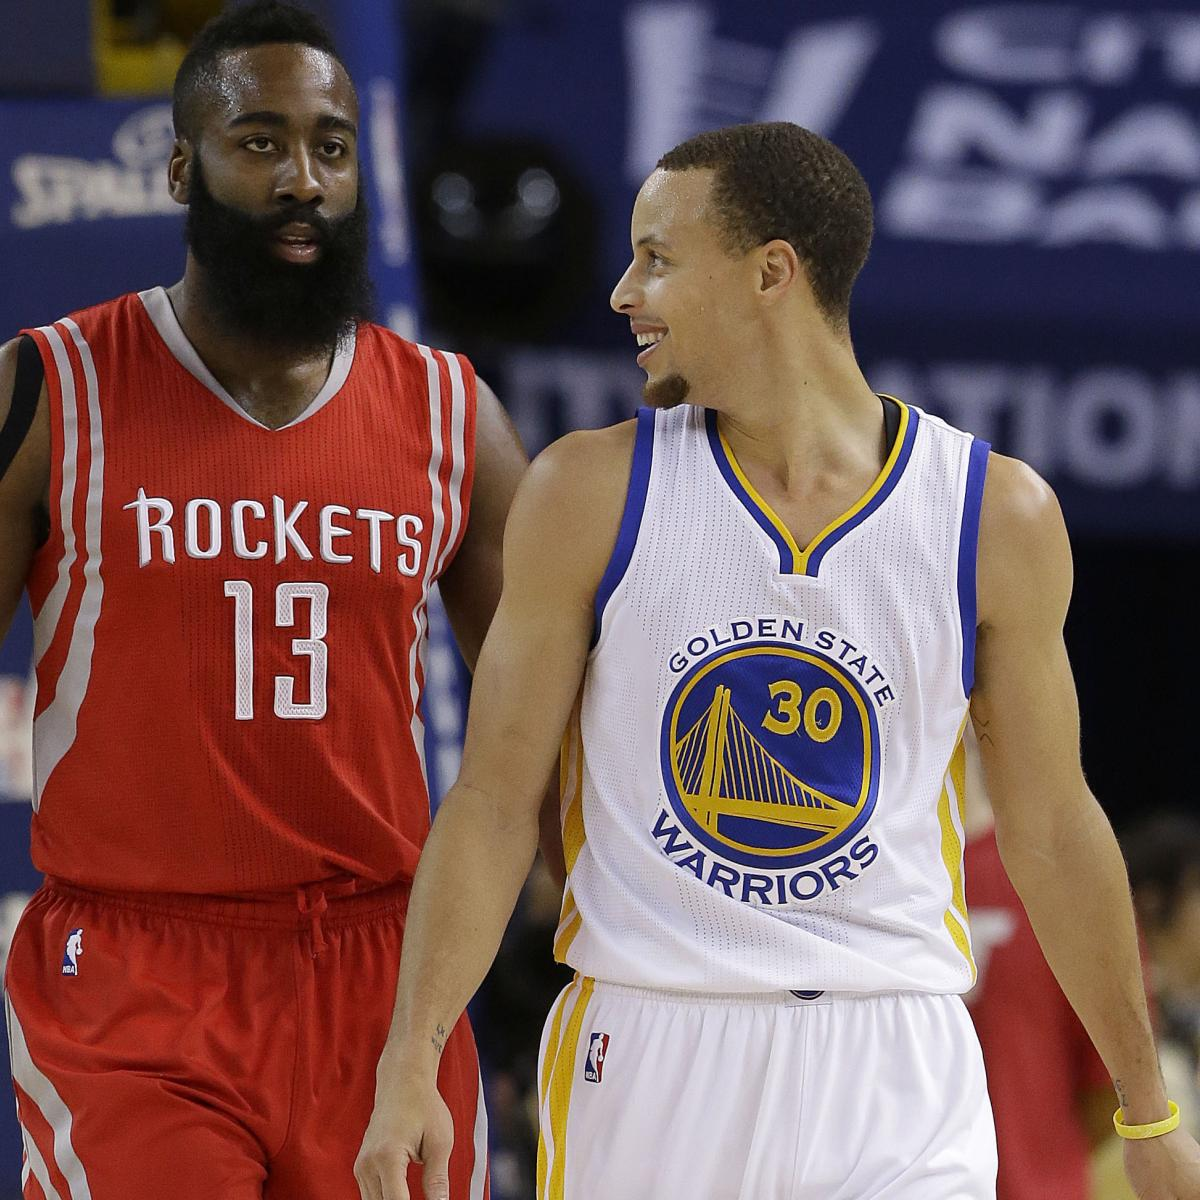 Rockets Vs Warriors Twitter Reaction: Rockets Vs. Warriors: Analysis, Predictions For Western